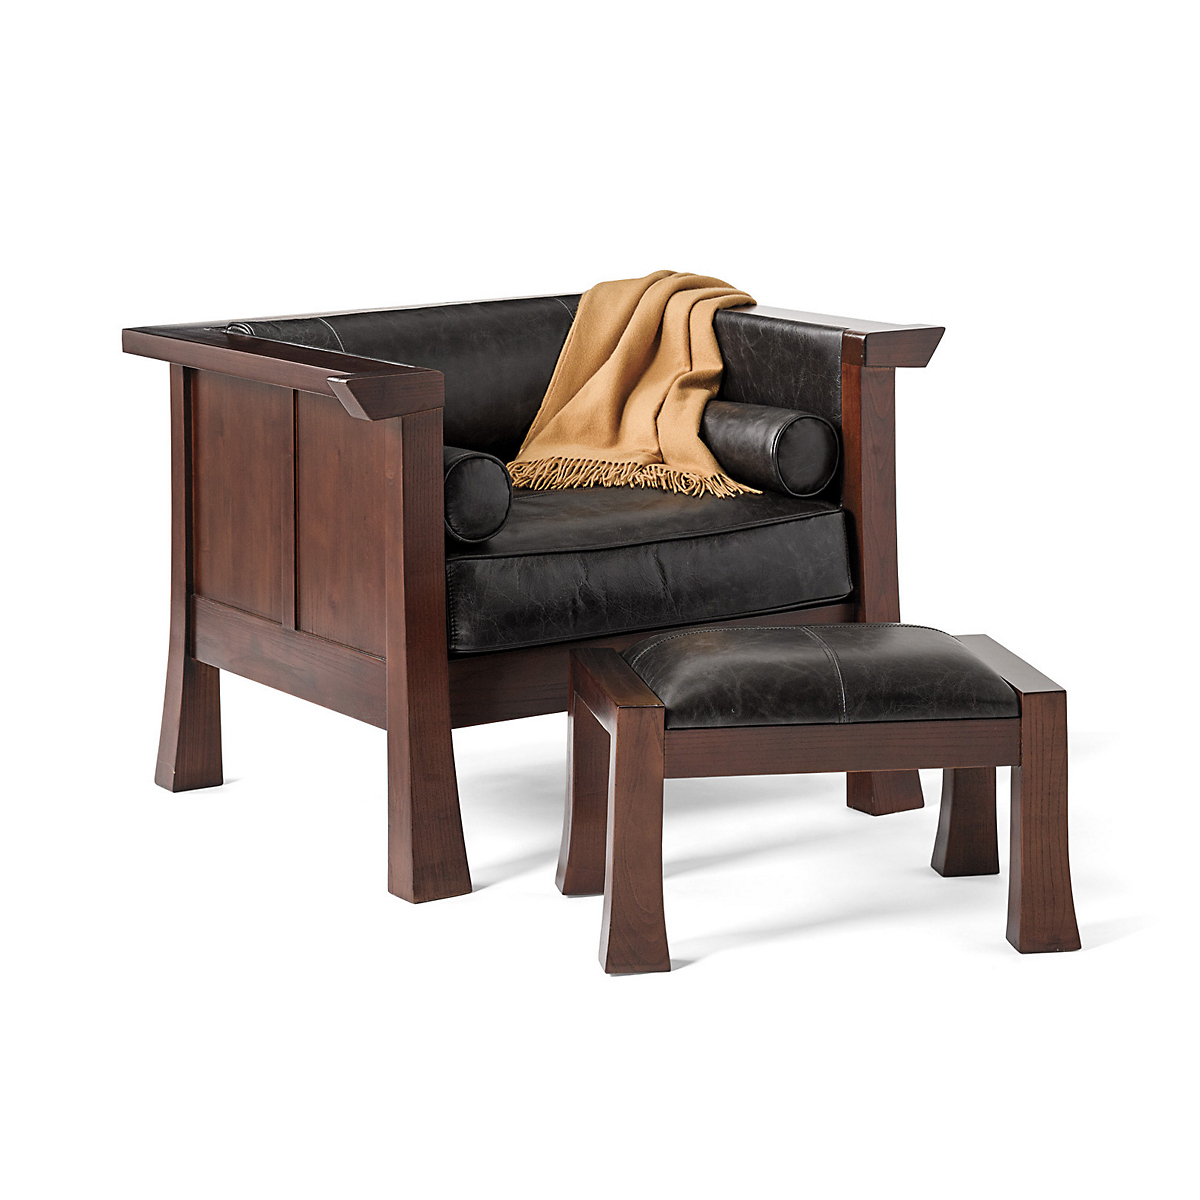 Maria Yee Cambria Chair & Ottoman, Black Leather